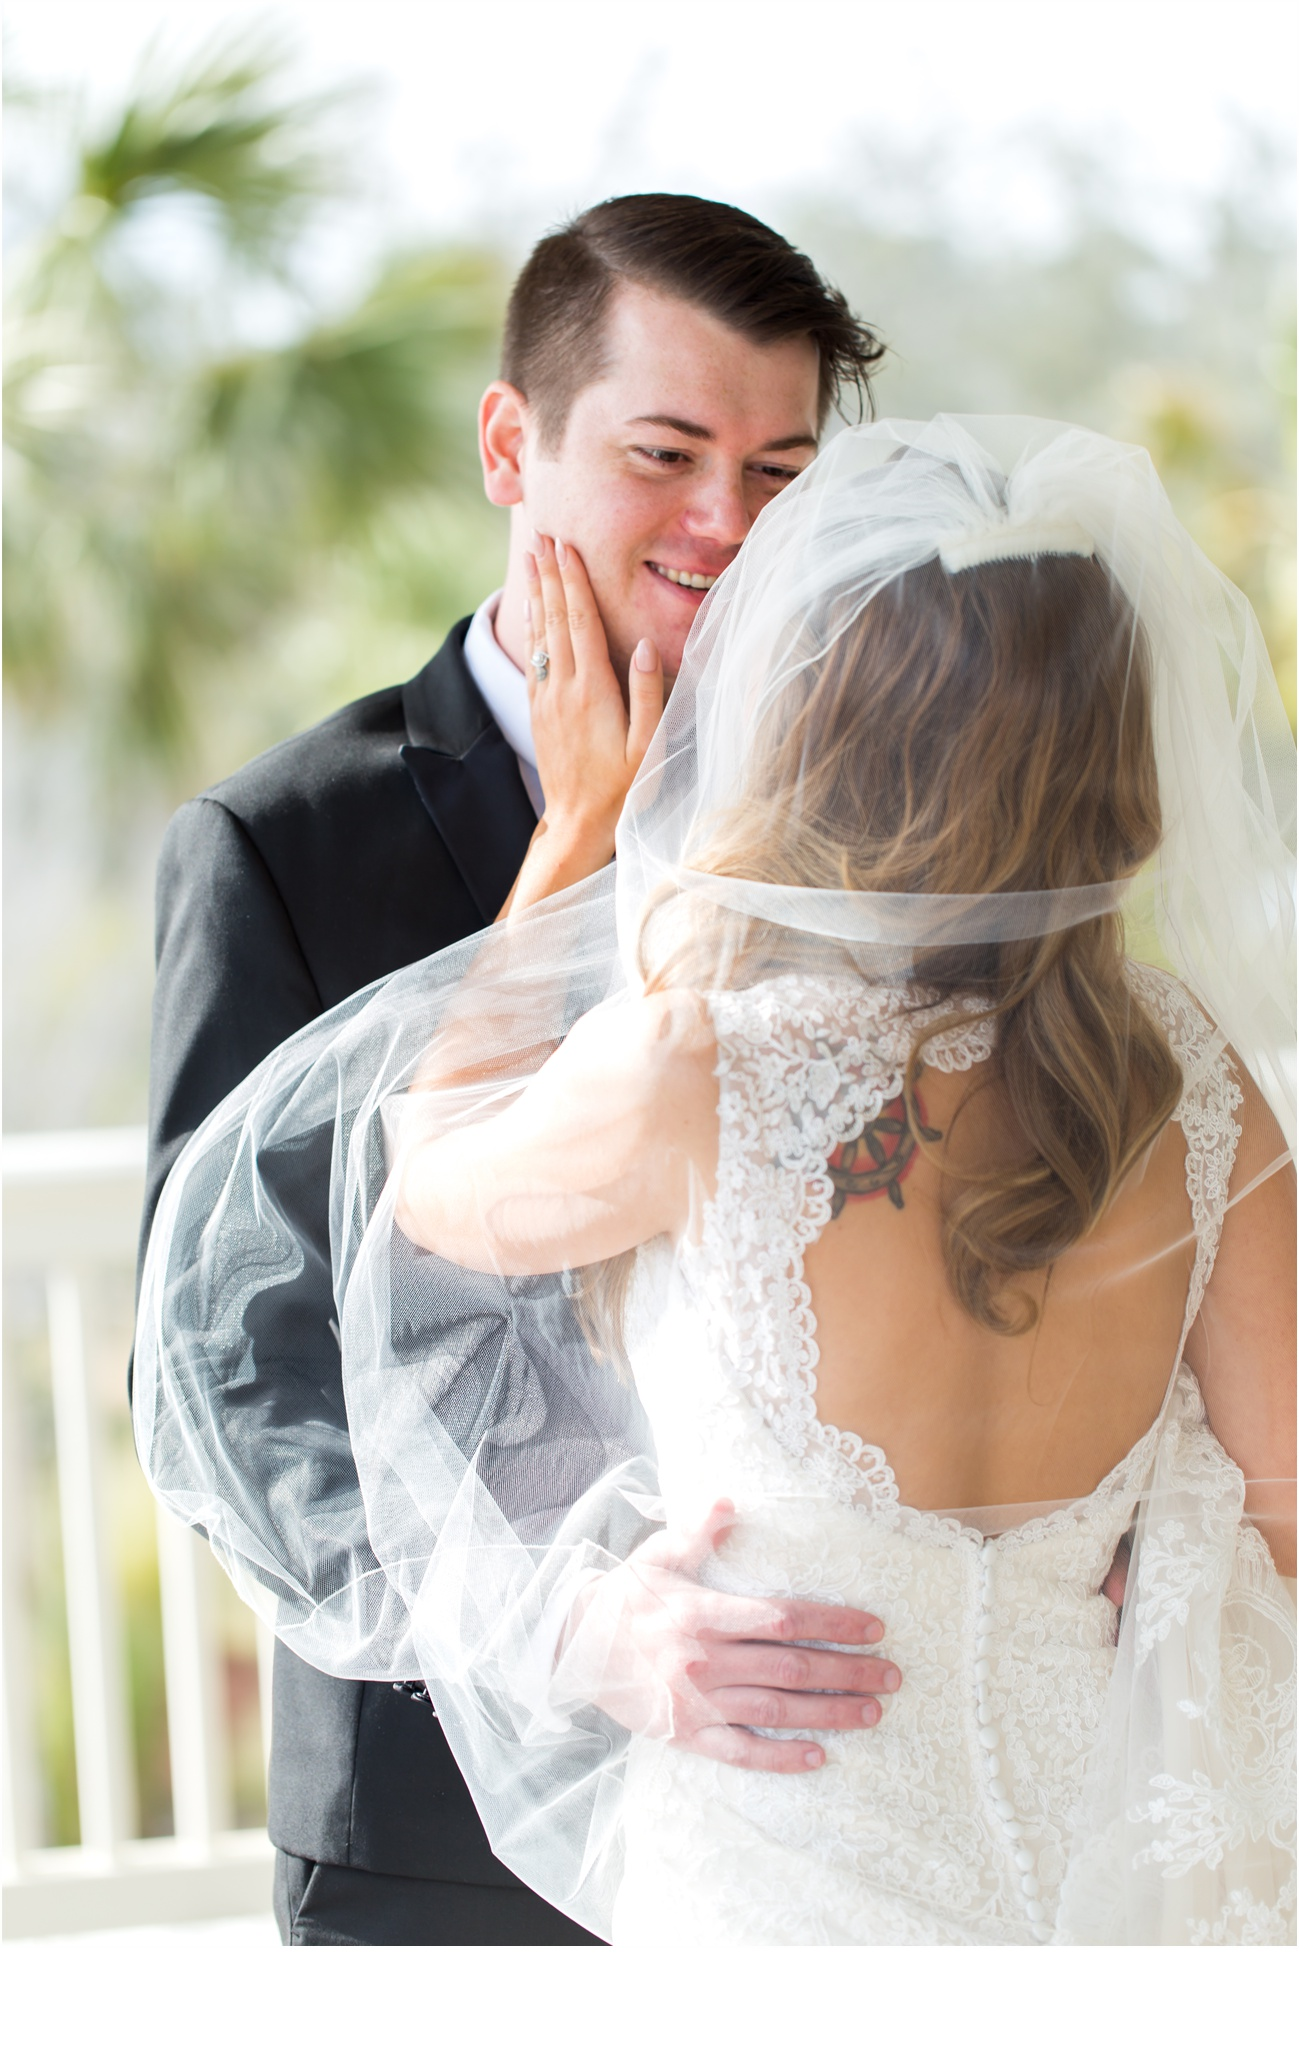 Rainey_Gregg_Photography_St._Simons_Island_Georgia_California_Wedding_Portrait_Photography_0782.jpg